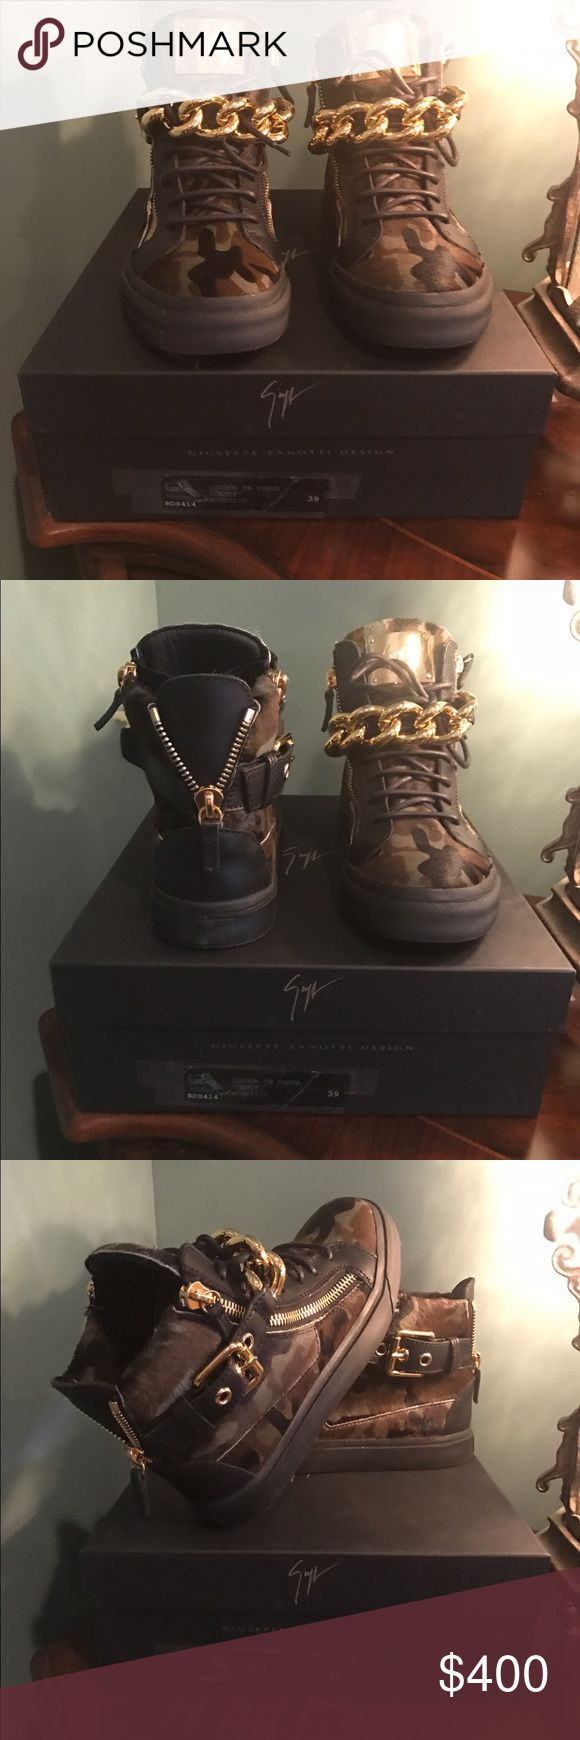 GIUSEPPE ZANOTTI sneakers Giuseppe Zanotti camouflage chain pony high top sneakers. Gold tone chain trim, side & back zip fastening with flat rubber sole. Gold tone GZ logo plate on tongue. 🆕-with dust bag & box. 100% authentic. (Cannot find certificate in box) Smoke free 🏡 Giuseppe Zanotti Shoes Sneakers